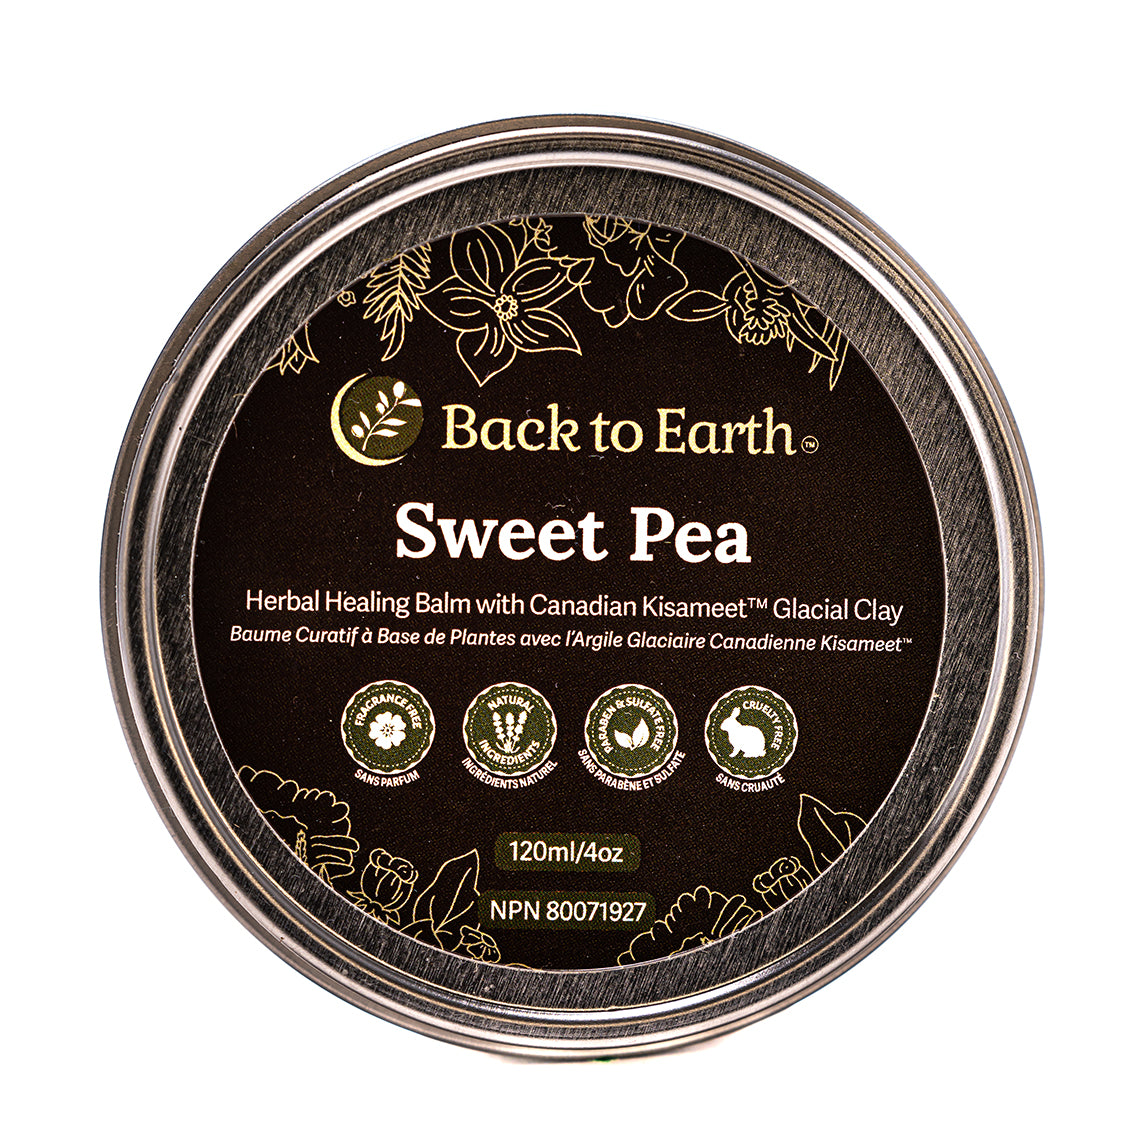 Sweet Pea Herbal Baby Balm with Kisolite® BMP - 120ml/4oz